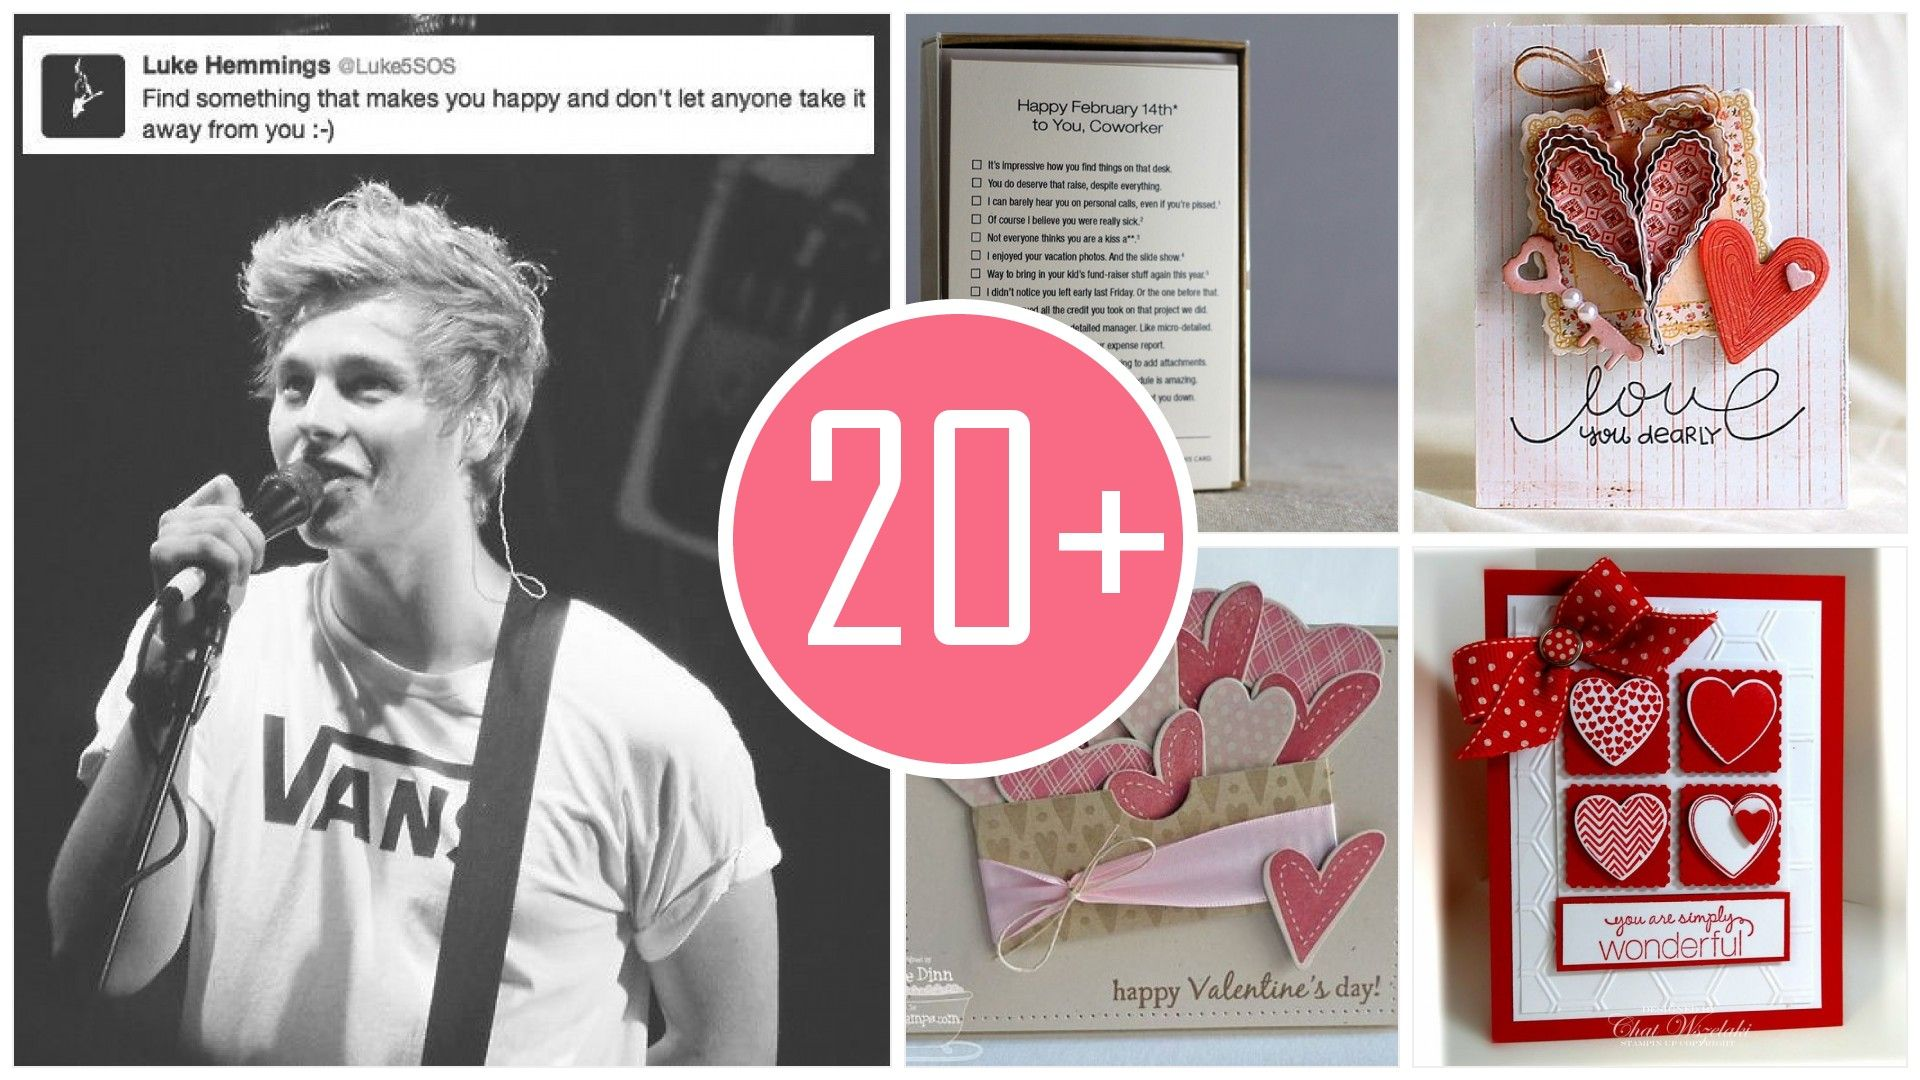 luke hemmings birthday card ; 2015-valentine-5sos-luke-hemmings-heart-card-templates-177580